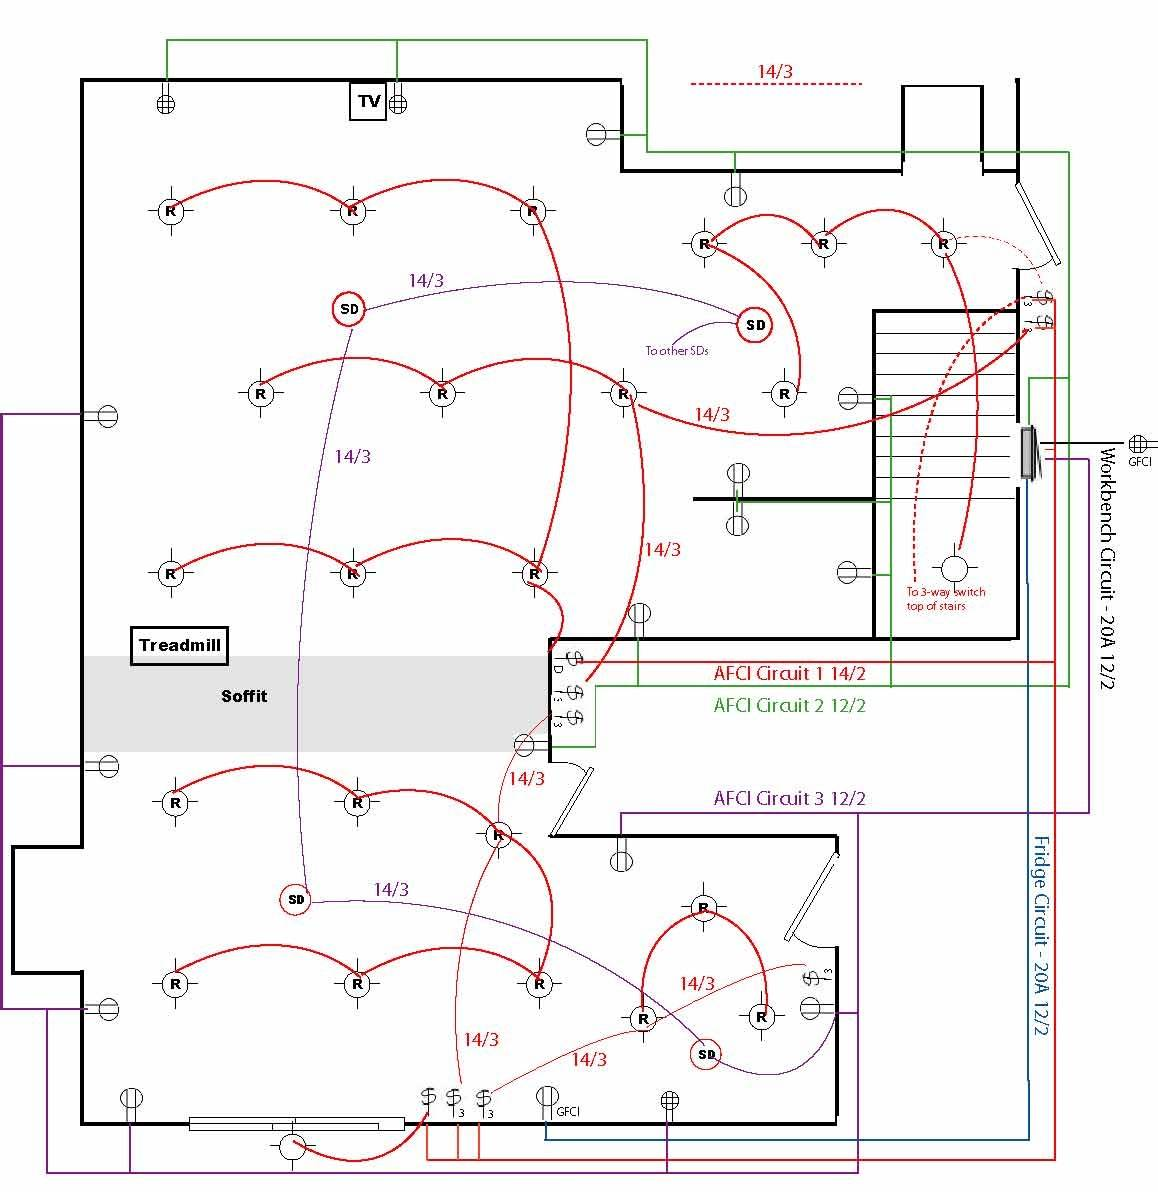 Wiring Diagram Basic House Electrical - House Plans | #143034 | Wiring Schematic Drawing Of House |  | House Plans